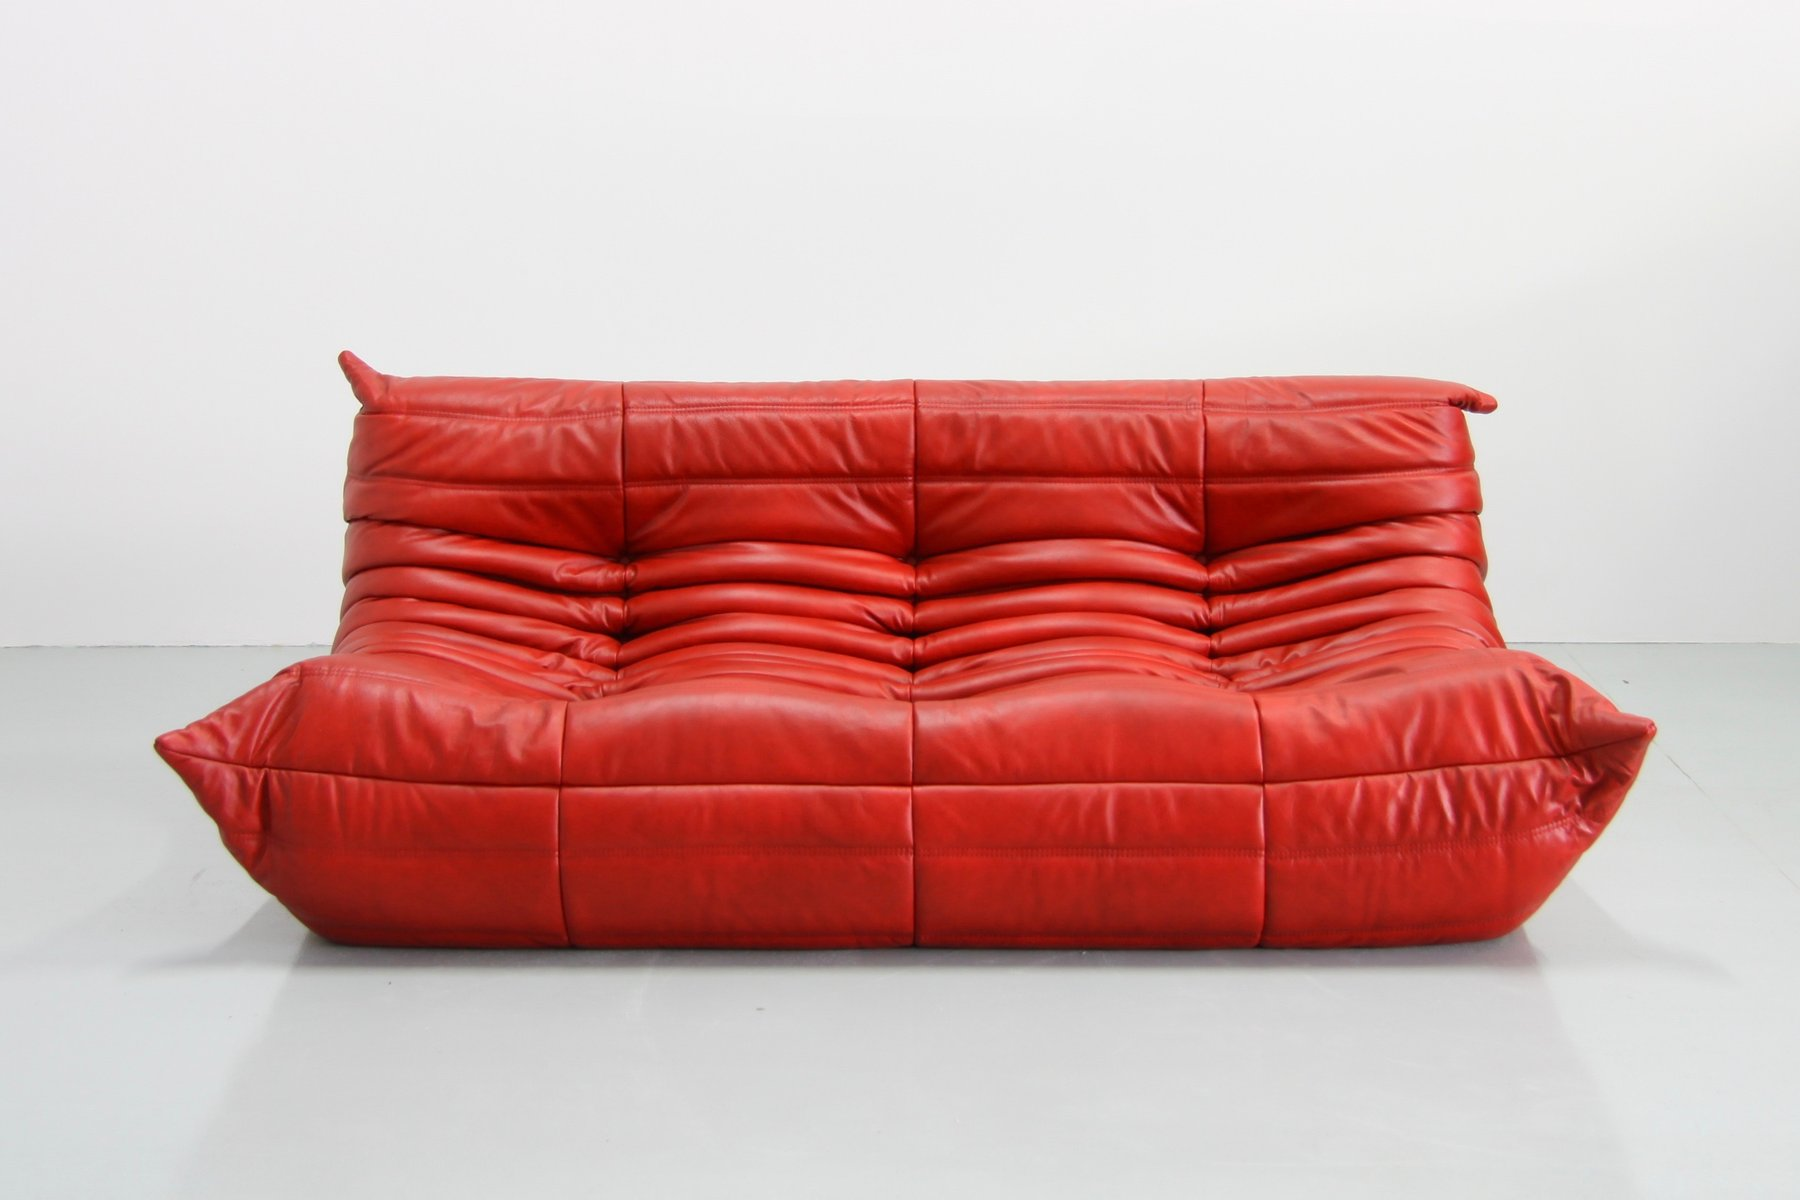 Vintage Red Leather Togo Sofa By Michel Ducaroy For Ligne Roset 8 1 779 00